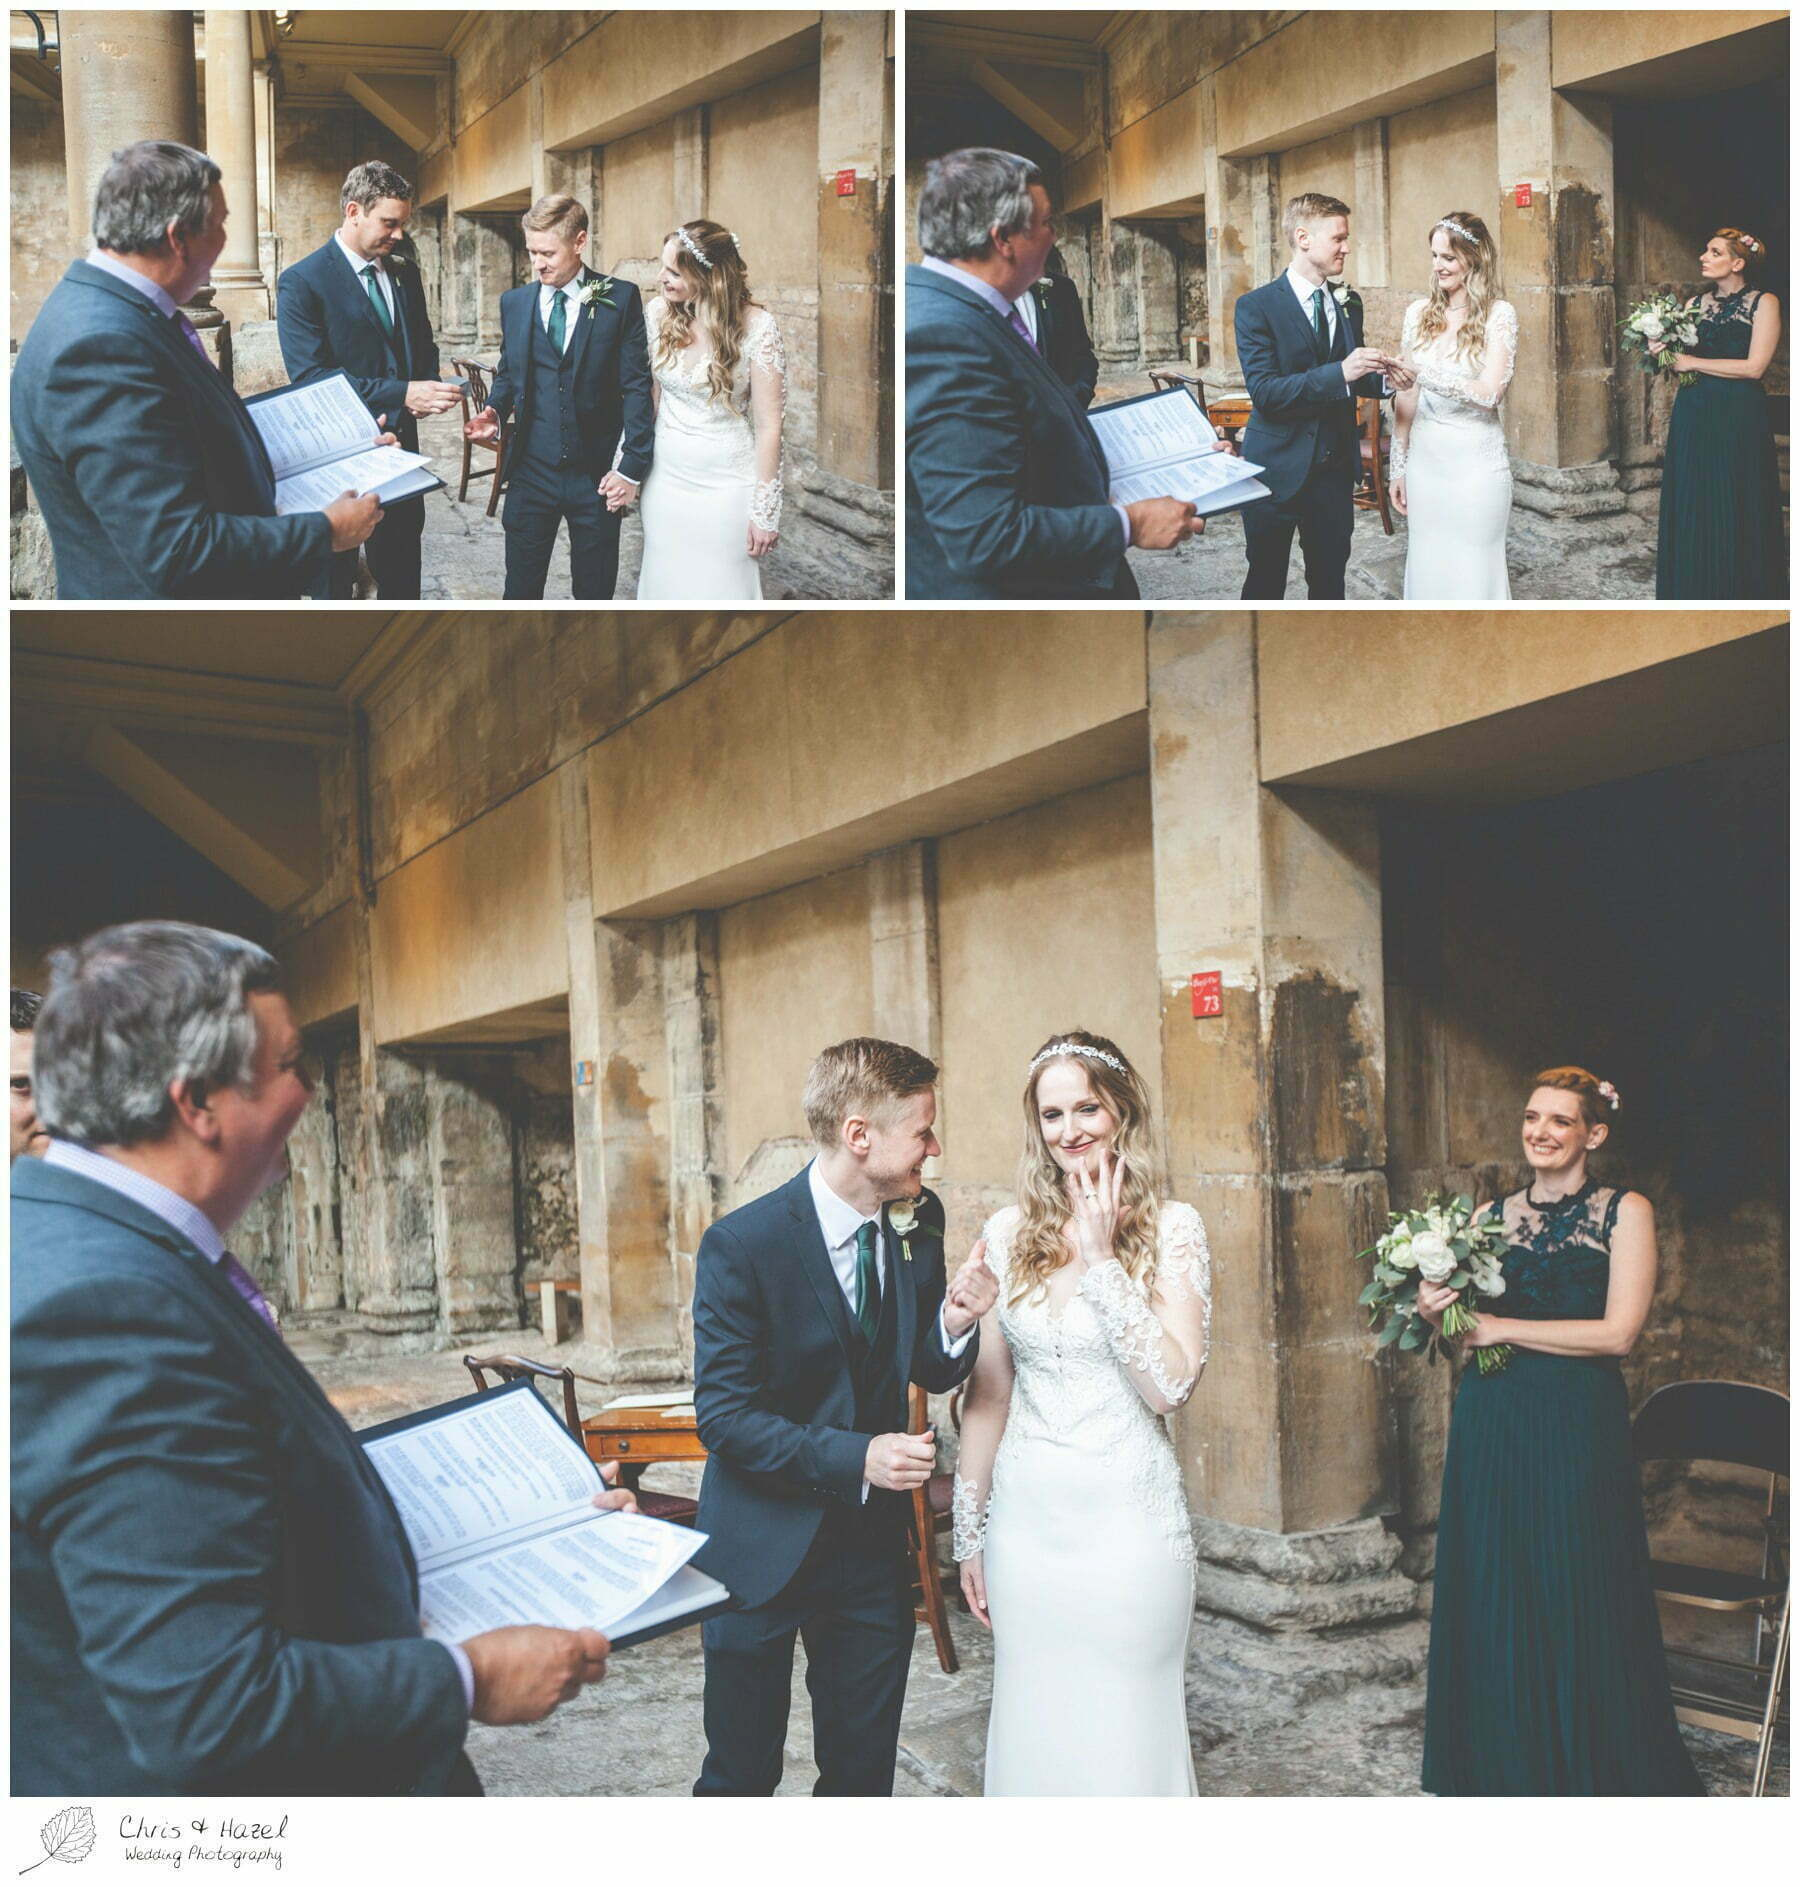 Ring Exchange vows Bride and Groom Wedding Ceremony at Roman Baths Pump Rooms, The Roman Baths Wedding Photography, Roman Baths Wedding Photographer, Wedding in Bath, Bath Wedding Day, documentary wedding photography, Chris and Hazel Wedding Photography Bath, Andy Frost Sian Upson